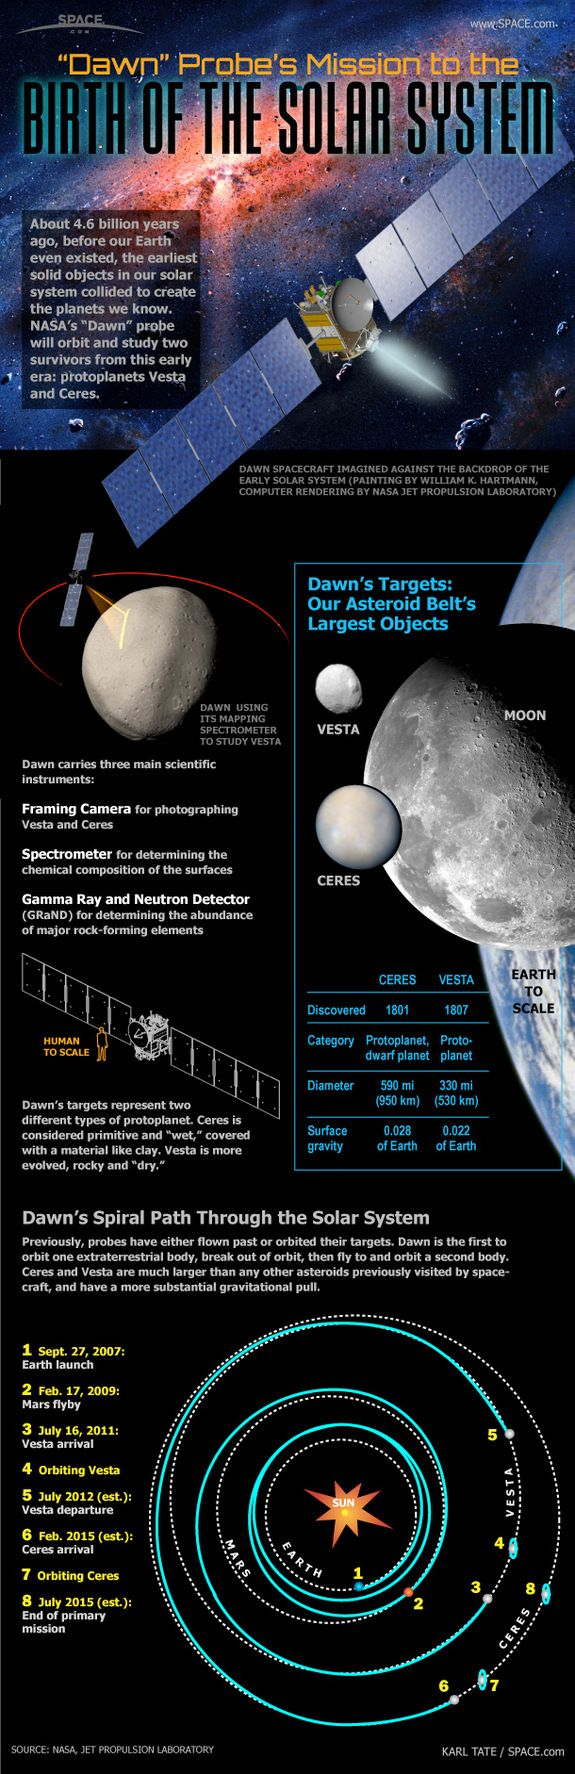 Spacecraft Orbits Protoplanet in Asteroid Belt, a First  For more information about our #Solar #System, check us out: http://astronomyisawesome.com/solar-systems/what-solar-system-are-we-in/